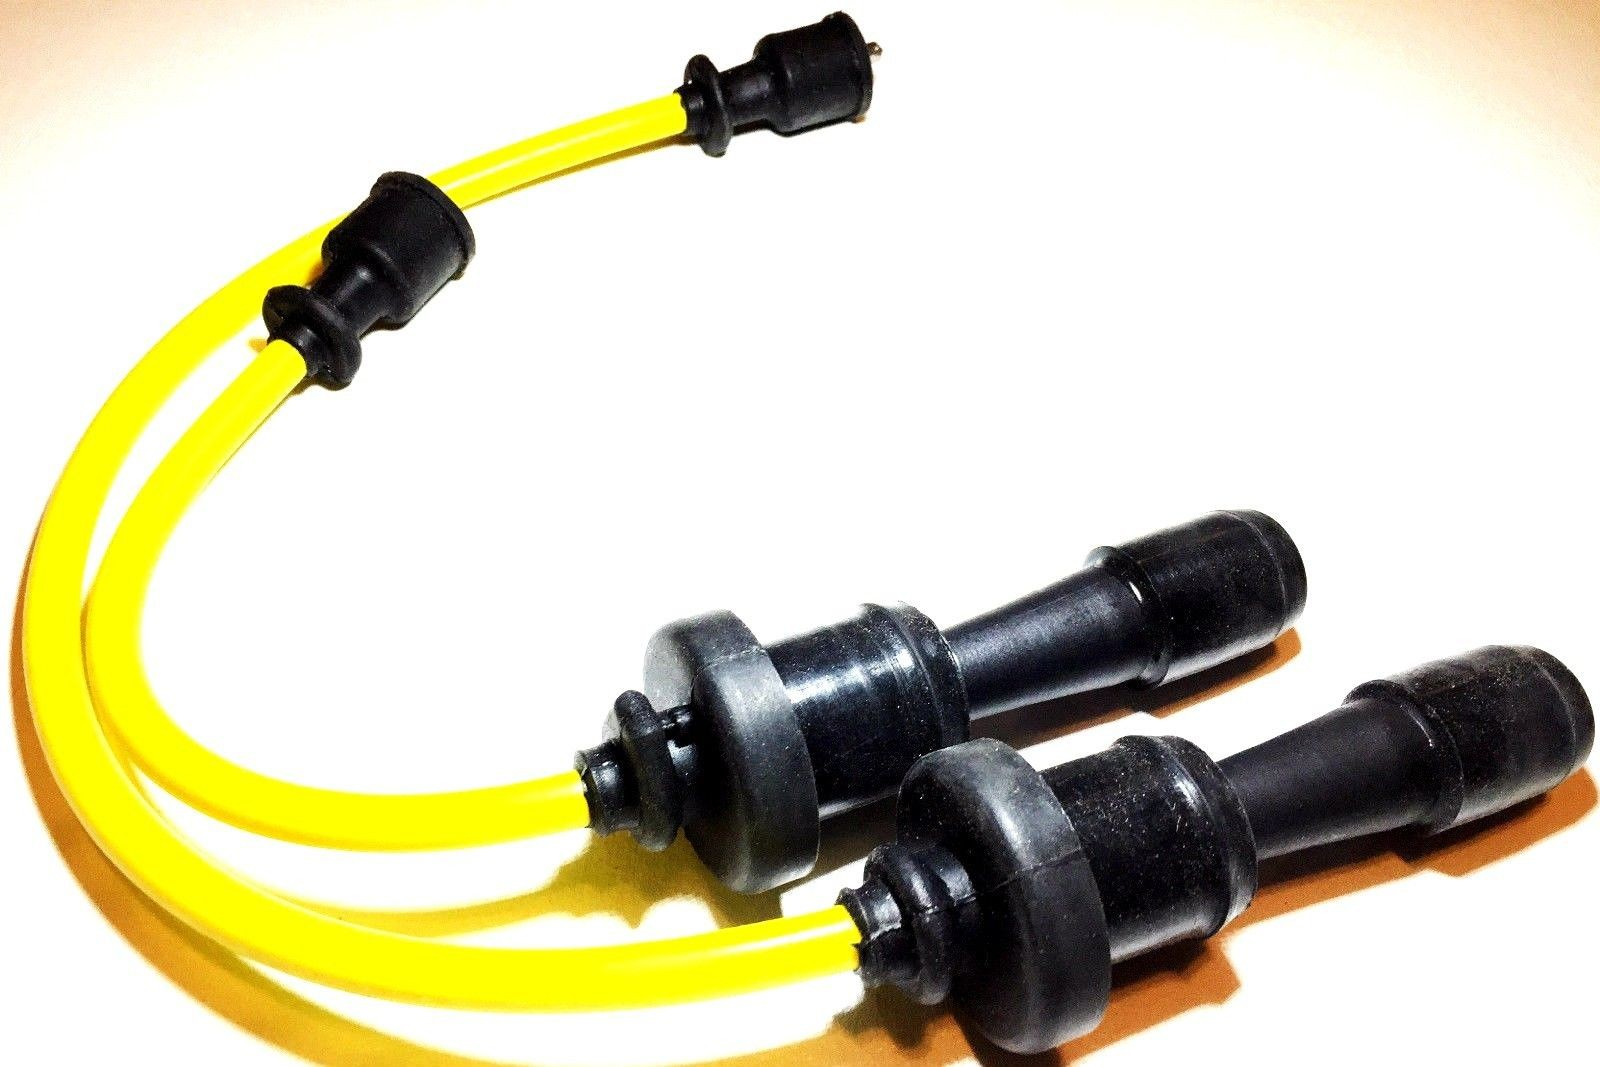 JDM MITSUBISHI LANCER EVOLUTION IGNITION COIL PACK WIRE SET EVO 4 5 ...